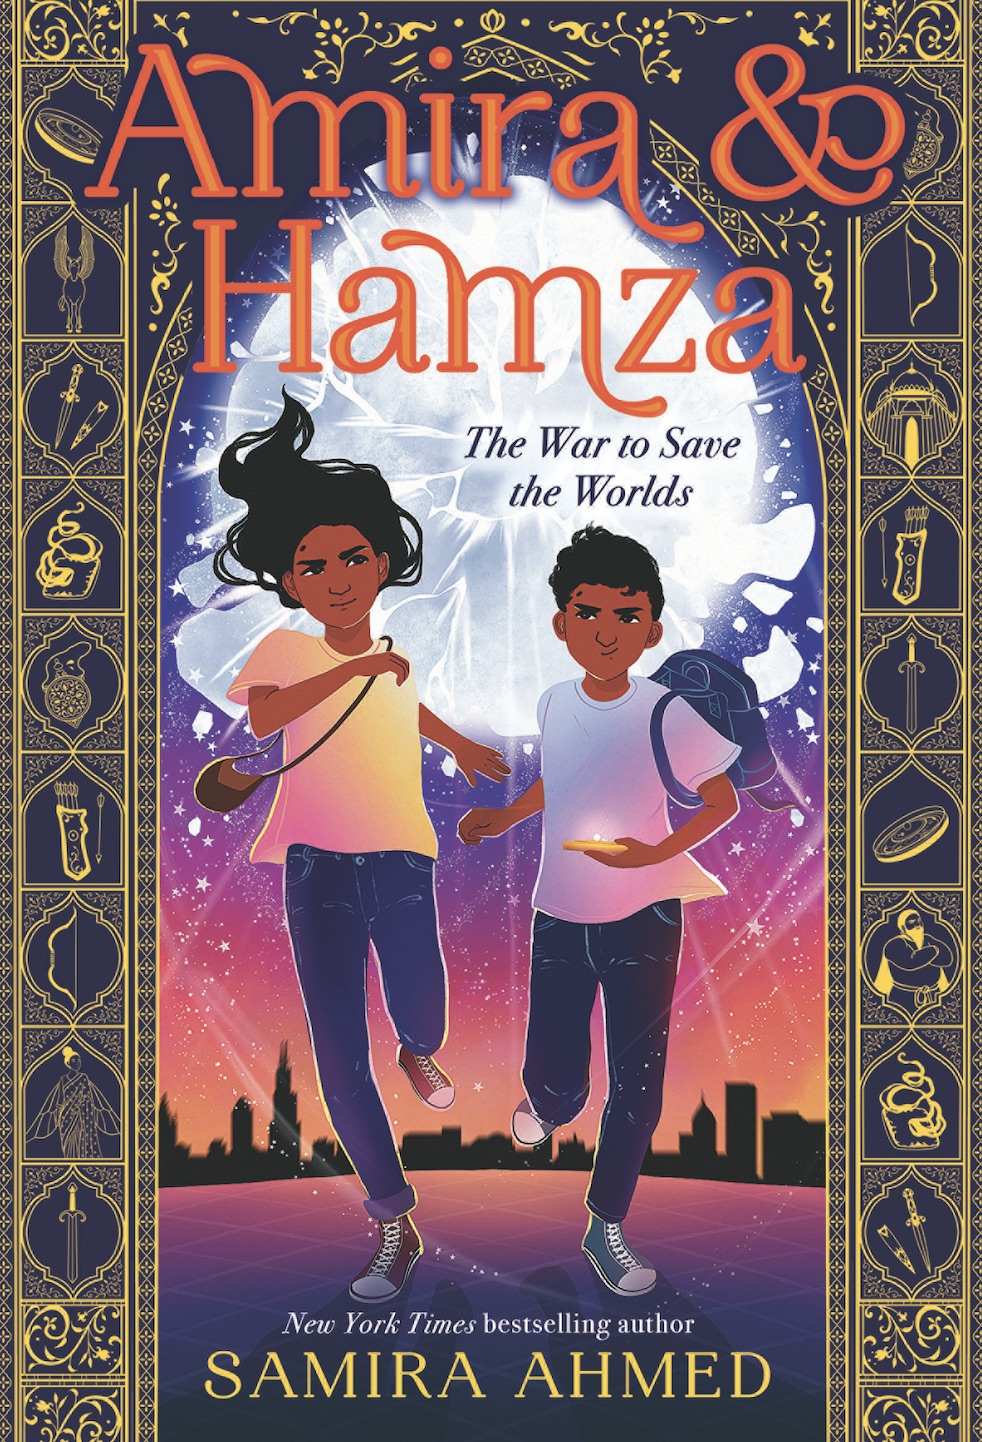 AMIRA & HAMZA: THE WAR TO SAVE THE WORLDS: Interview with Samira Ahmed + GIVEAWAY